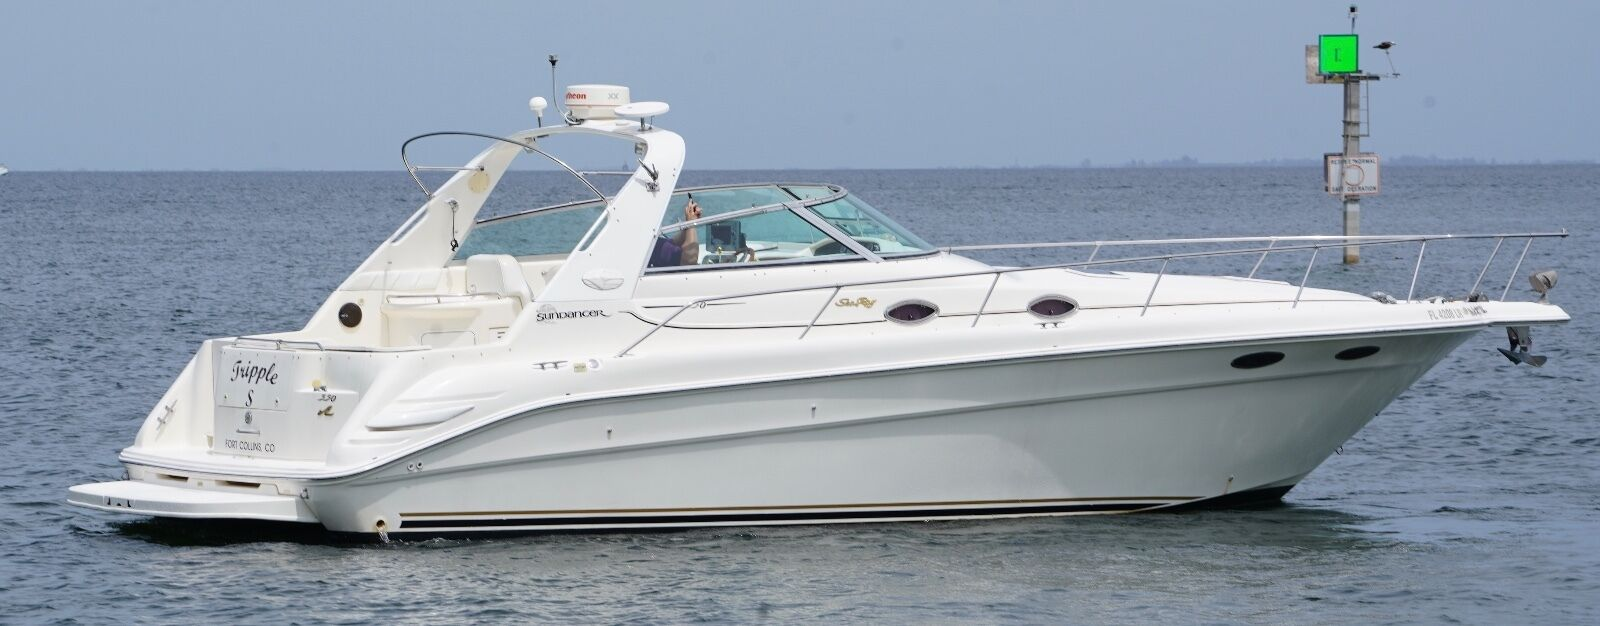 Sea Ray 33 Sundancer Cruiser EXPRESS yacht chaparral BAYLINER NO RESERVE AUCTION